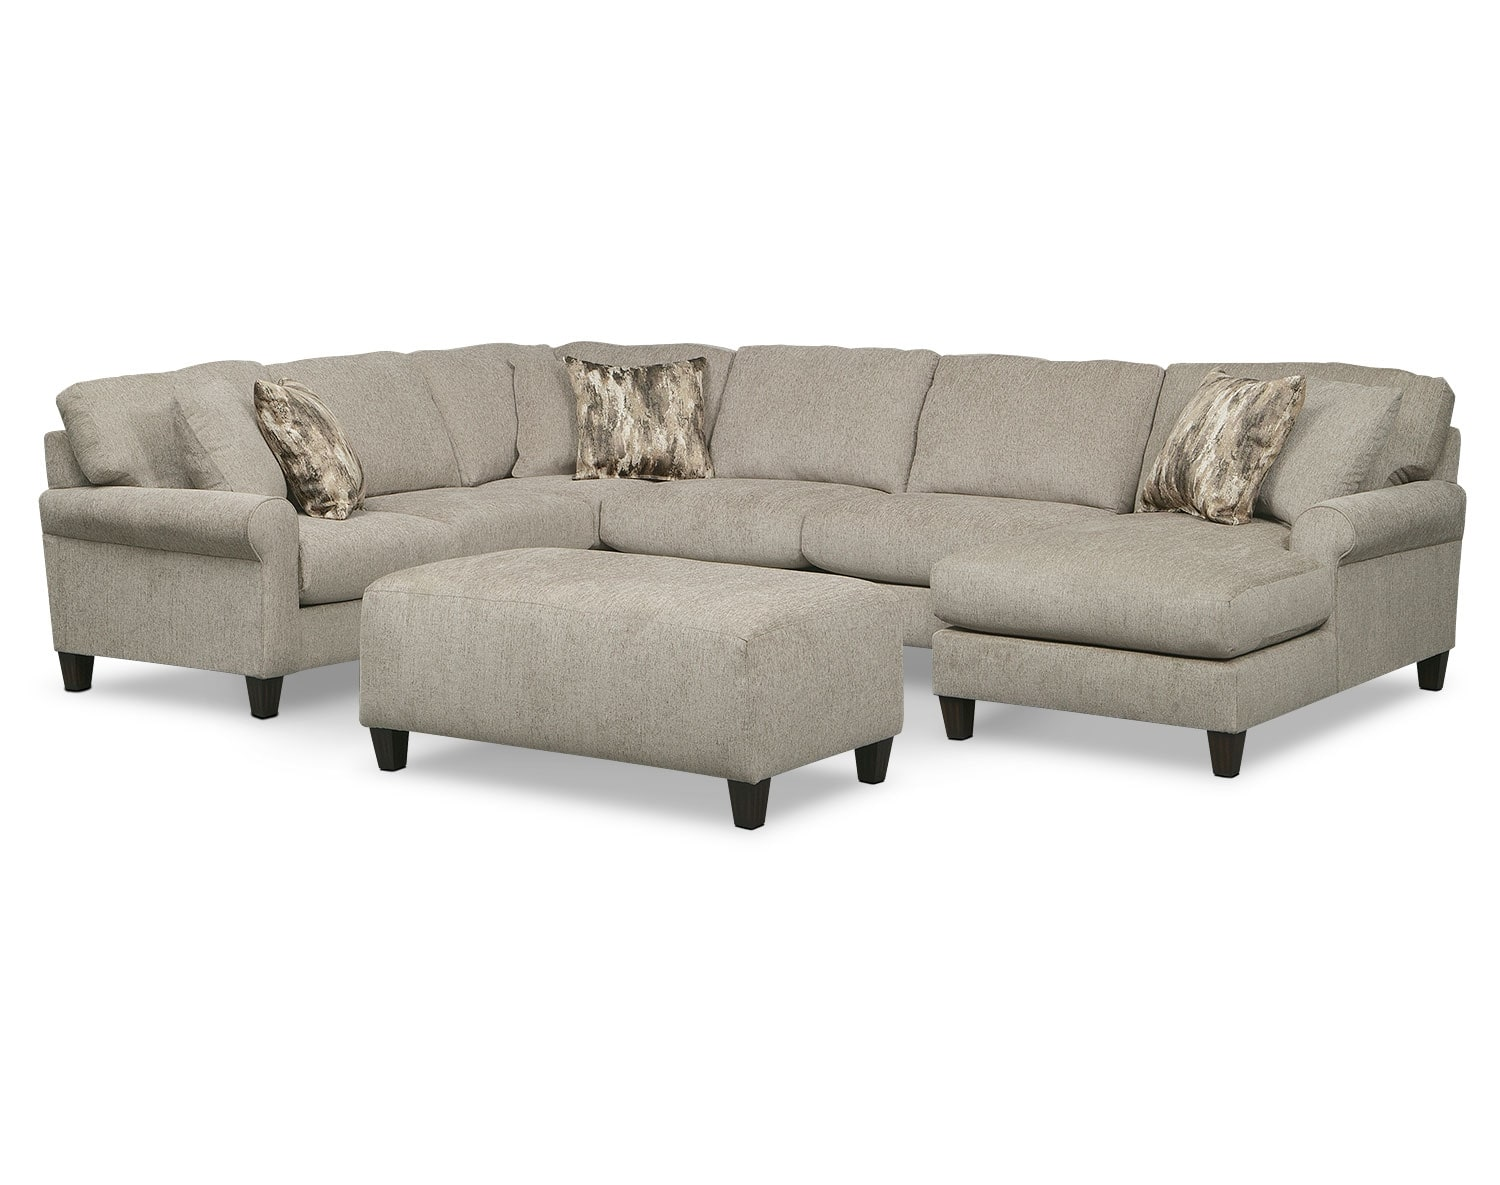 The Karma Mink Sectional Collection